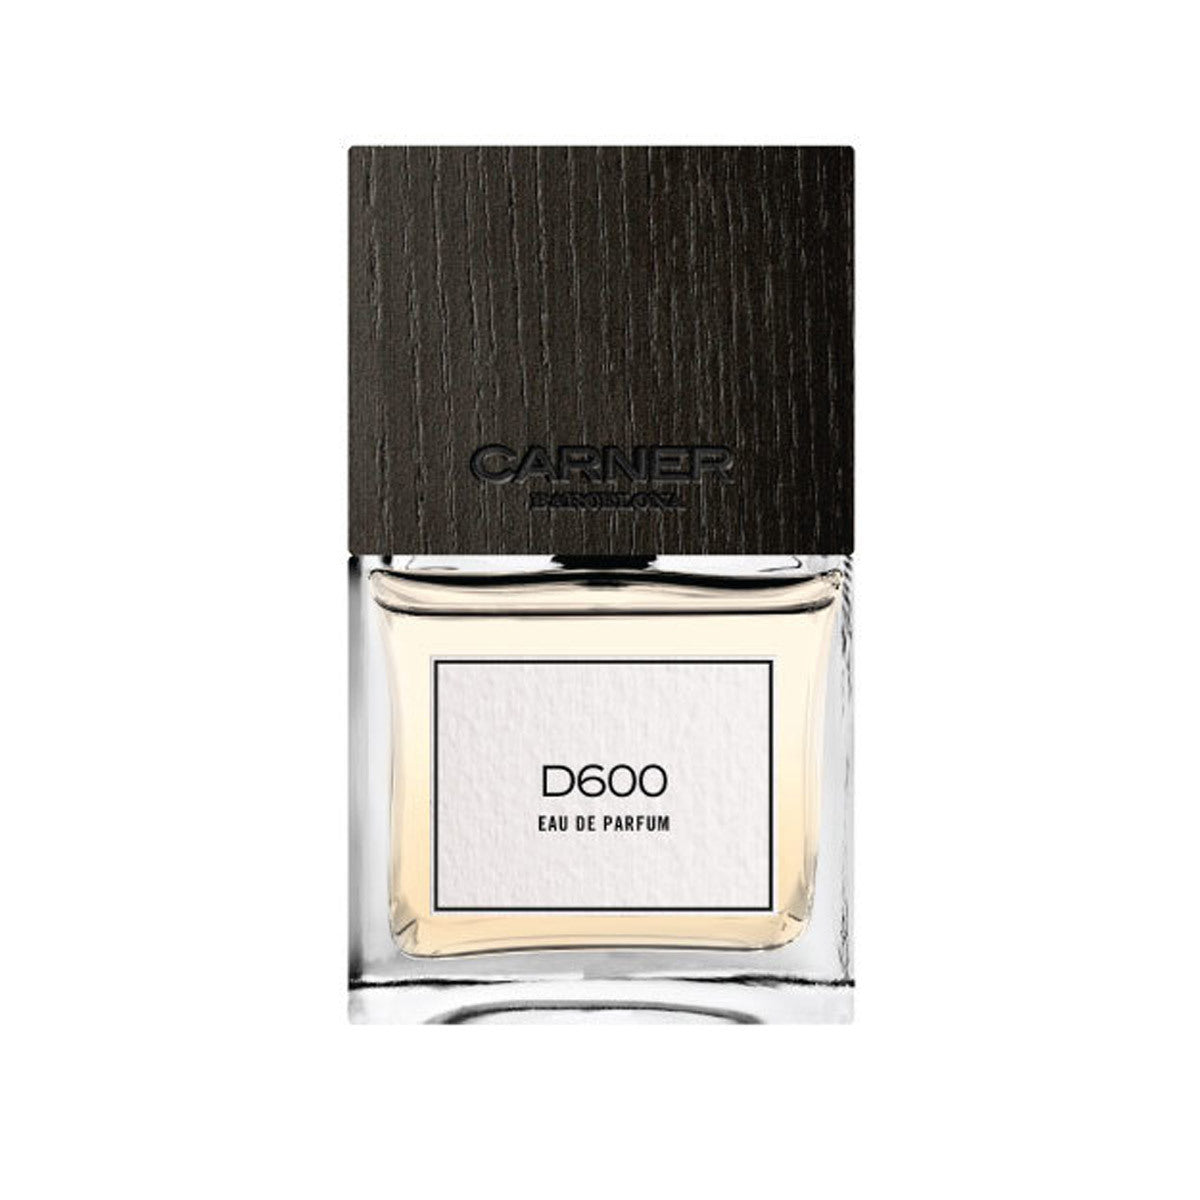 Niche Fragrance for Summer | Carner Barcelona D600 Eau de Parfum